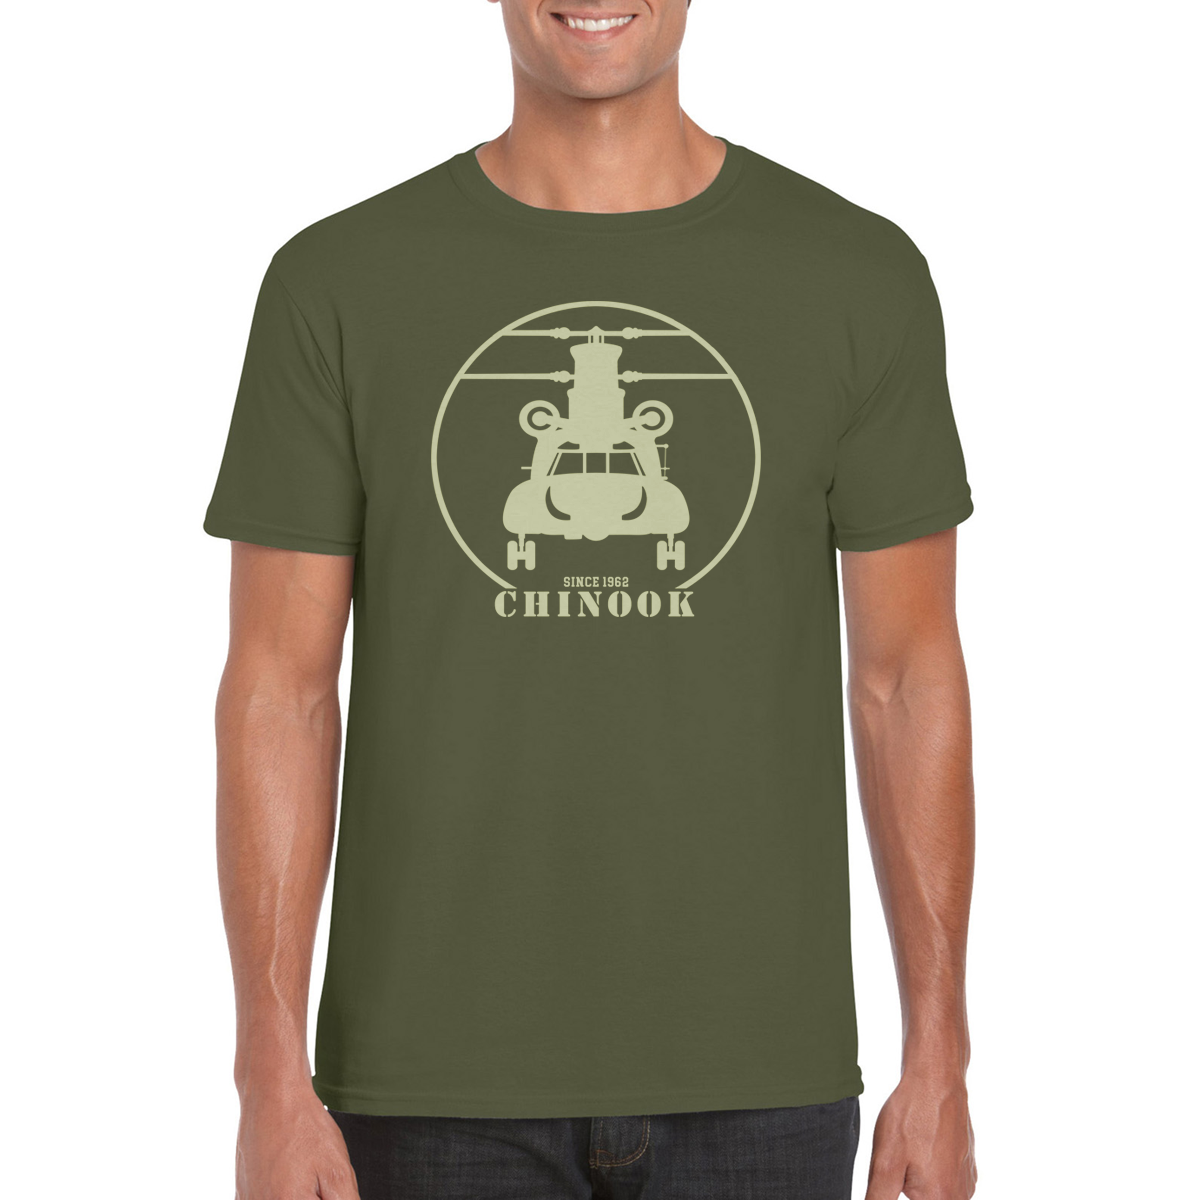 SINCE 1962 CHINOOK T-Shirt